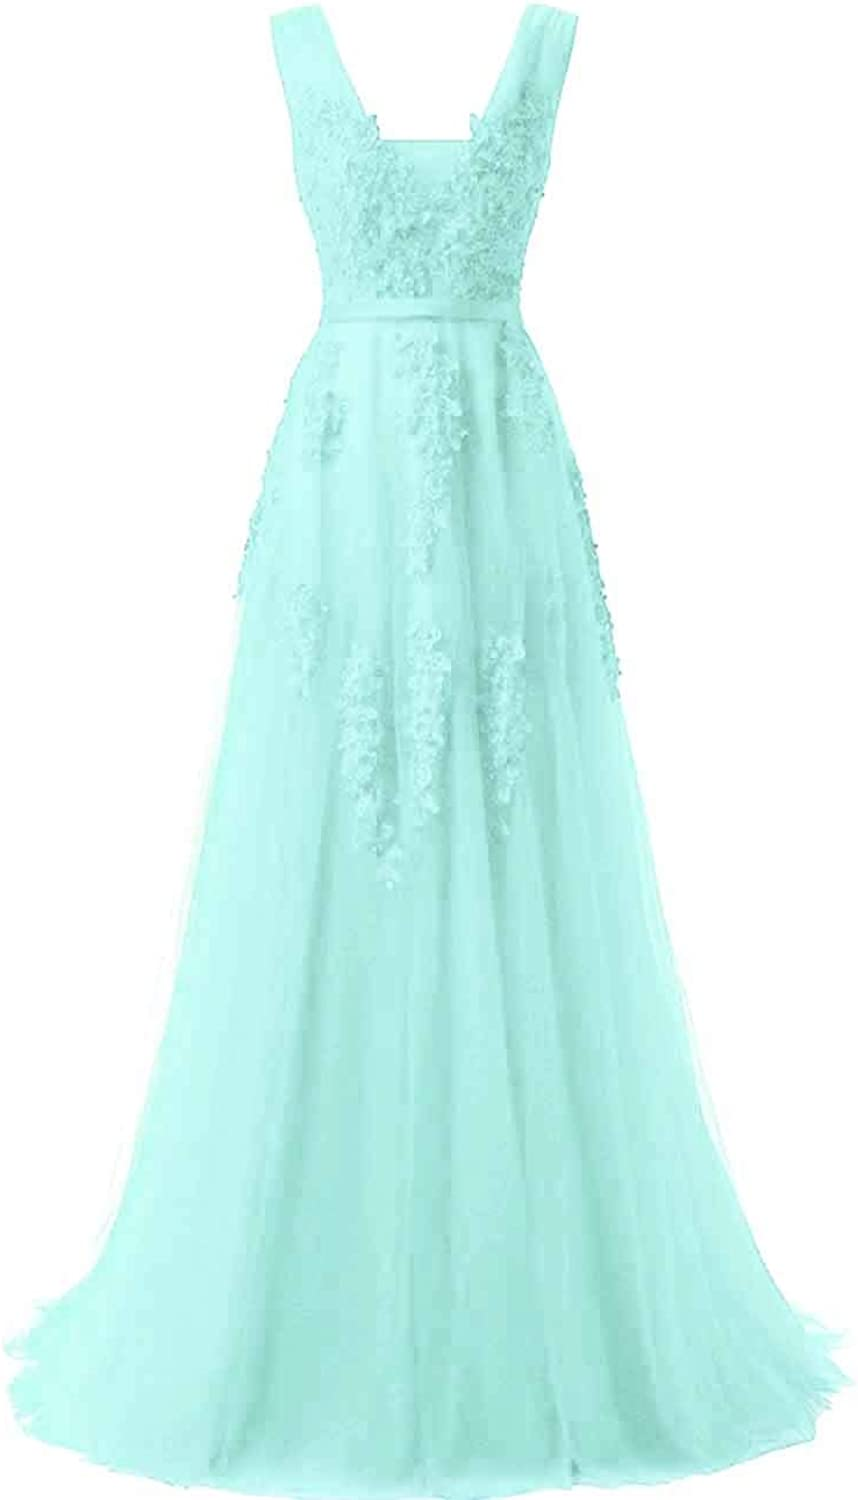 MorySong Women's Lace Beading Backless Aline Long Prom Formal Evening Dress